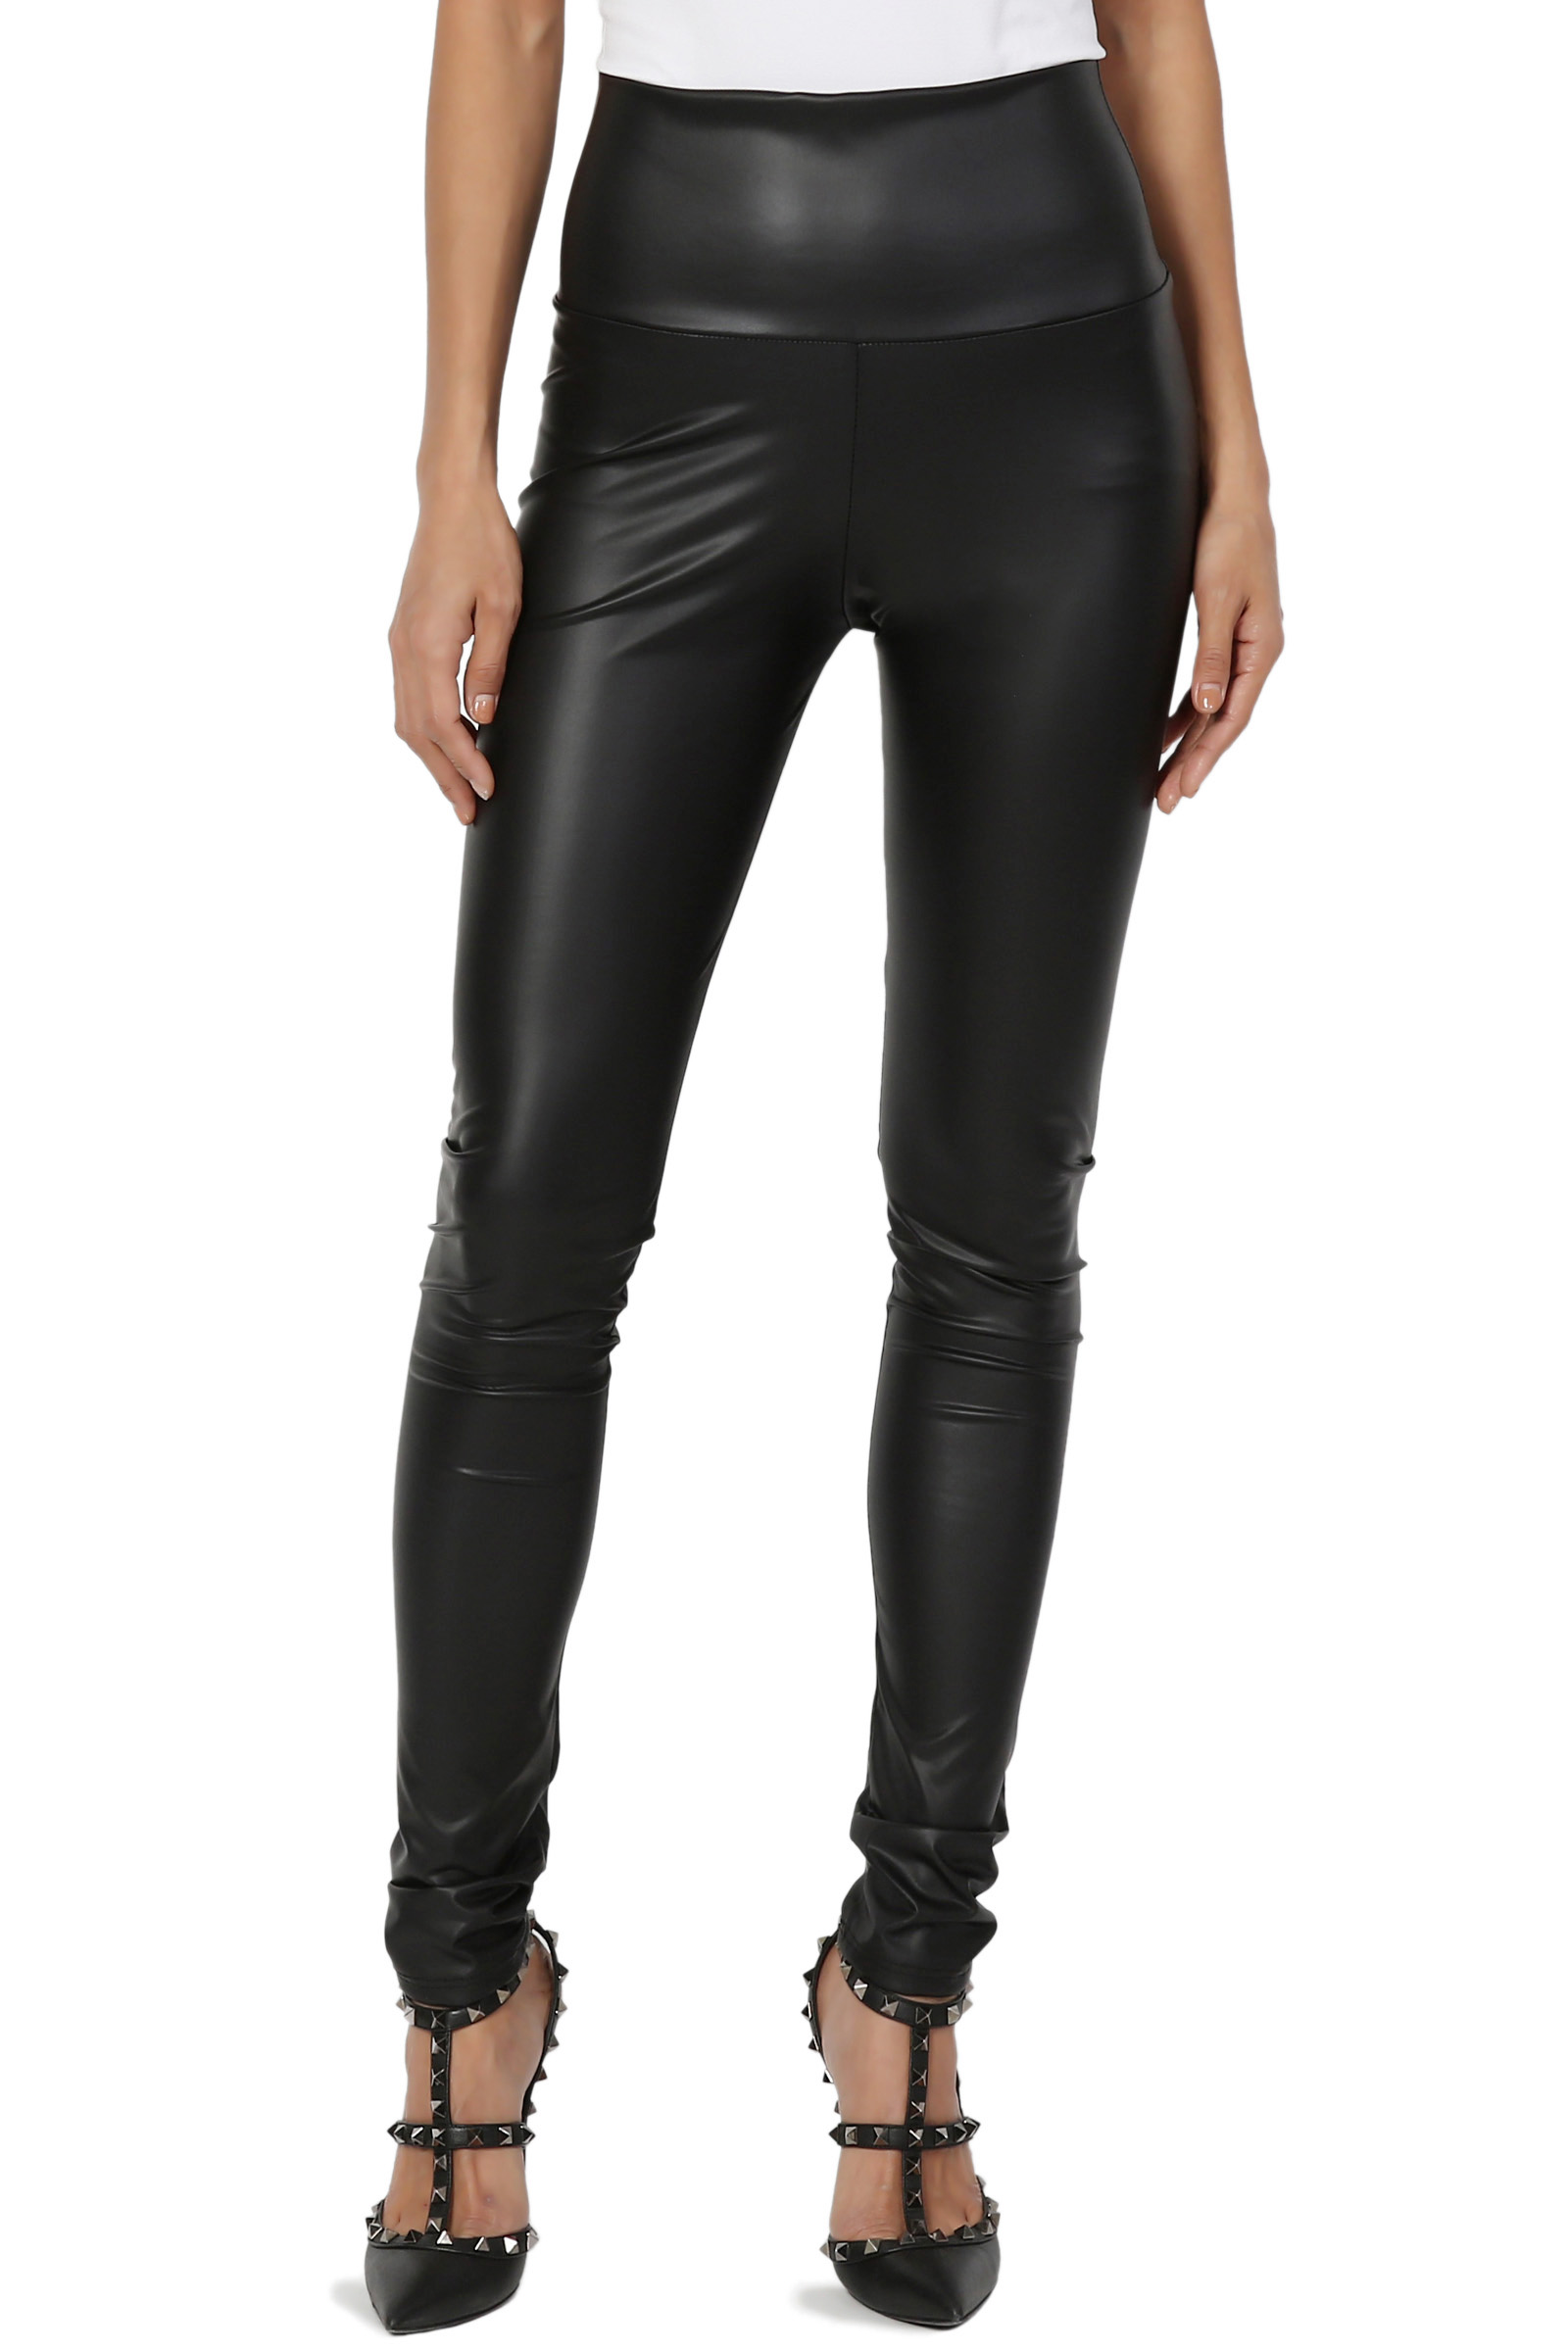 TheMogan Women's S~3X Biker Stretch Faux Leather High Waisted Full Ankle Leggings